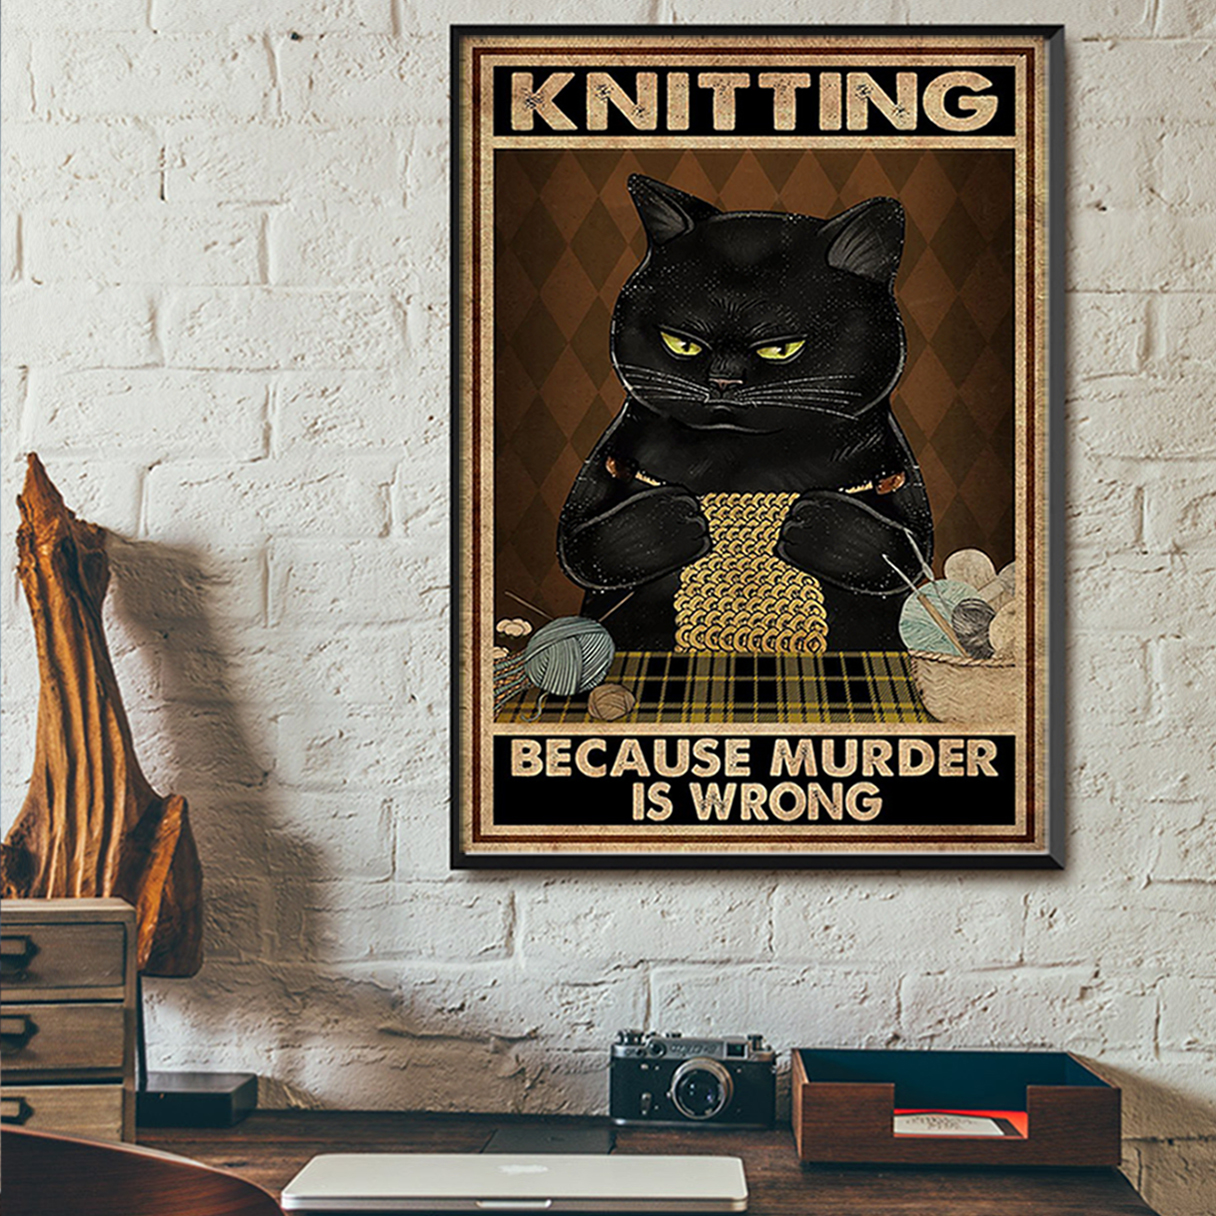 Cat kniting because murder is wrong poster A2